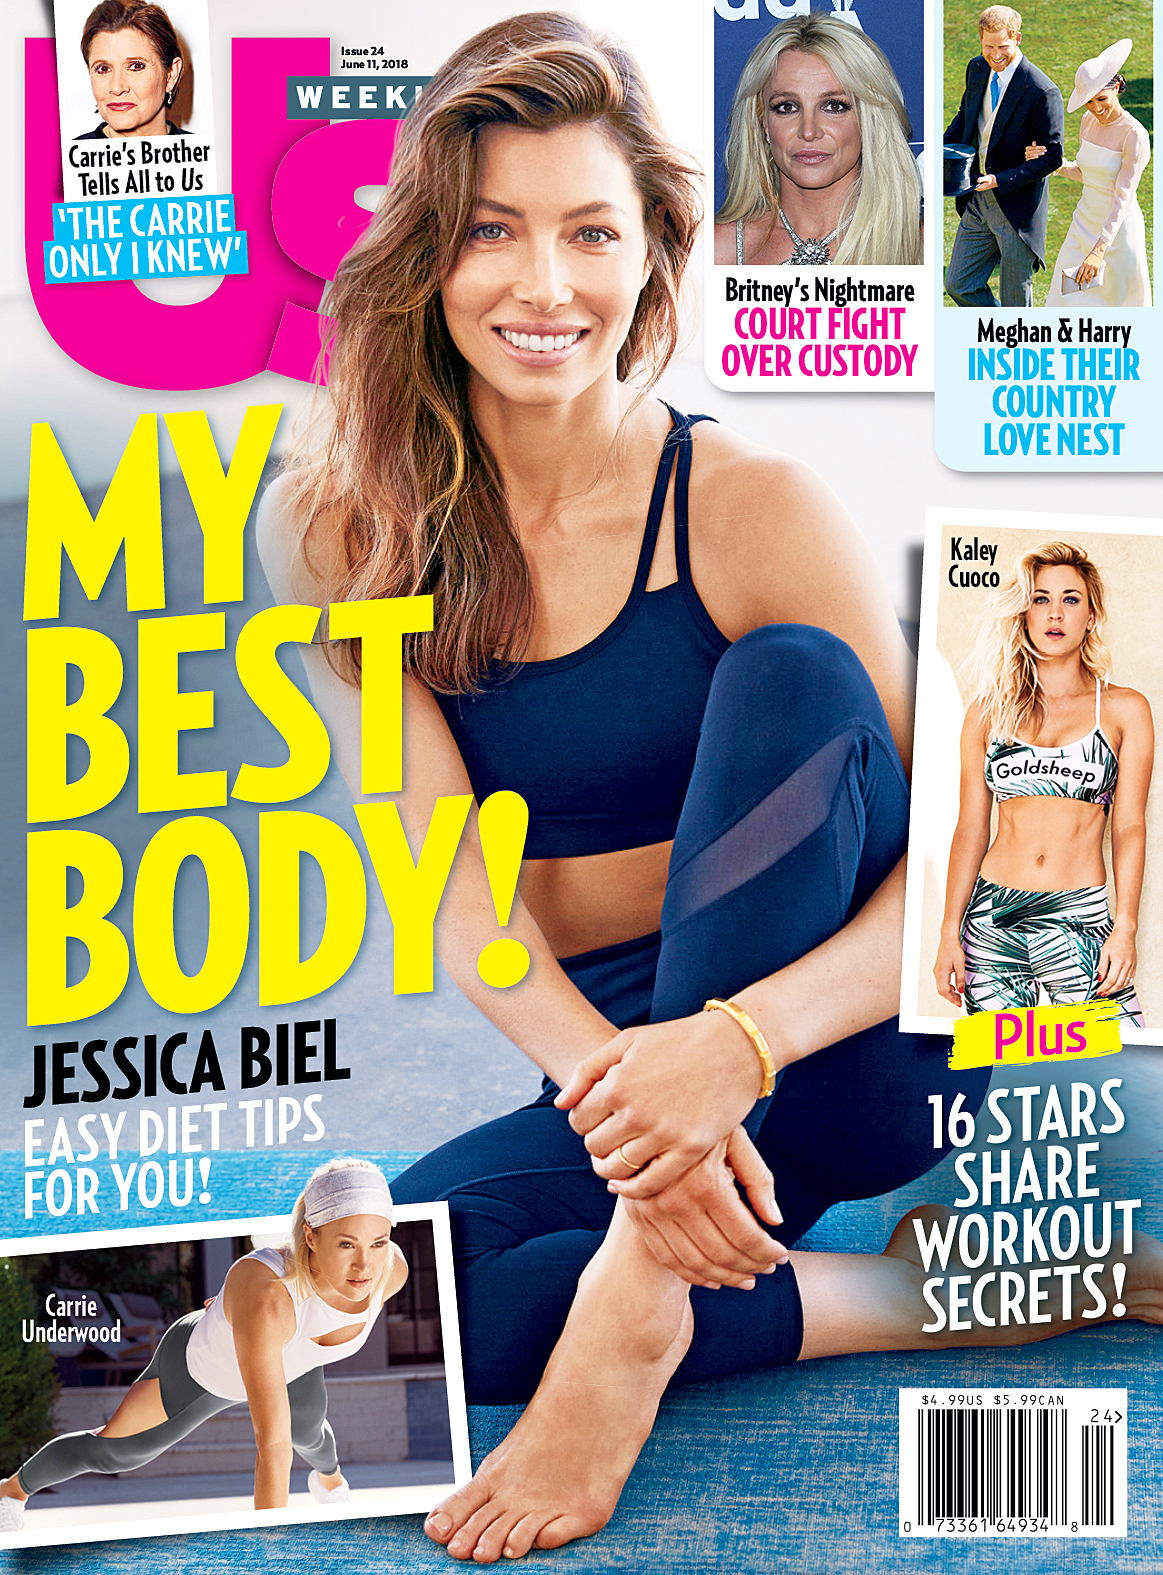 Us Weekly Best Bodies cover